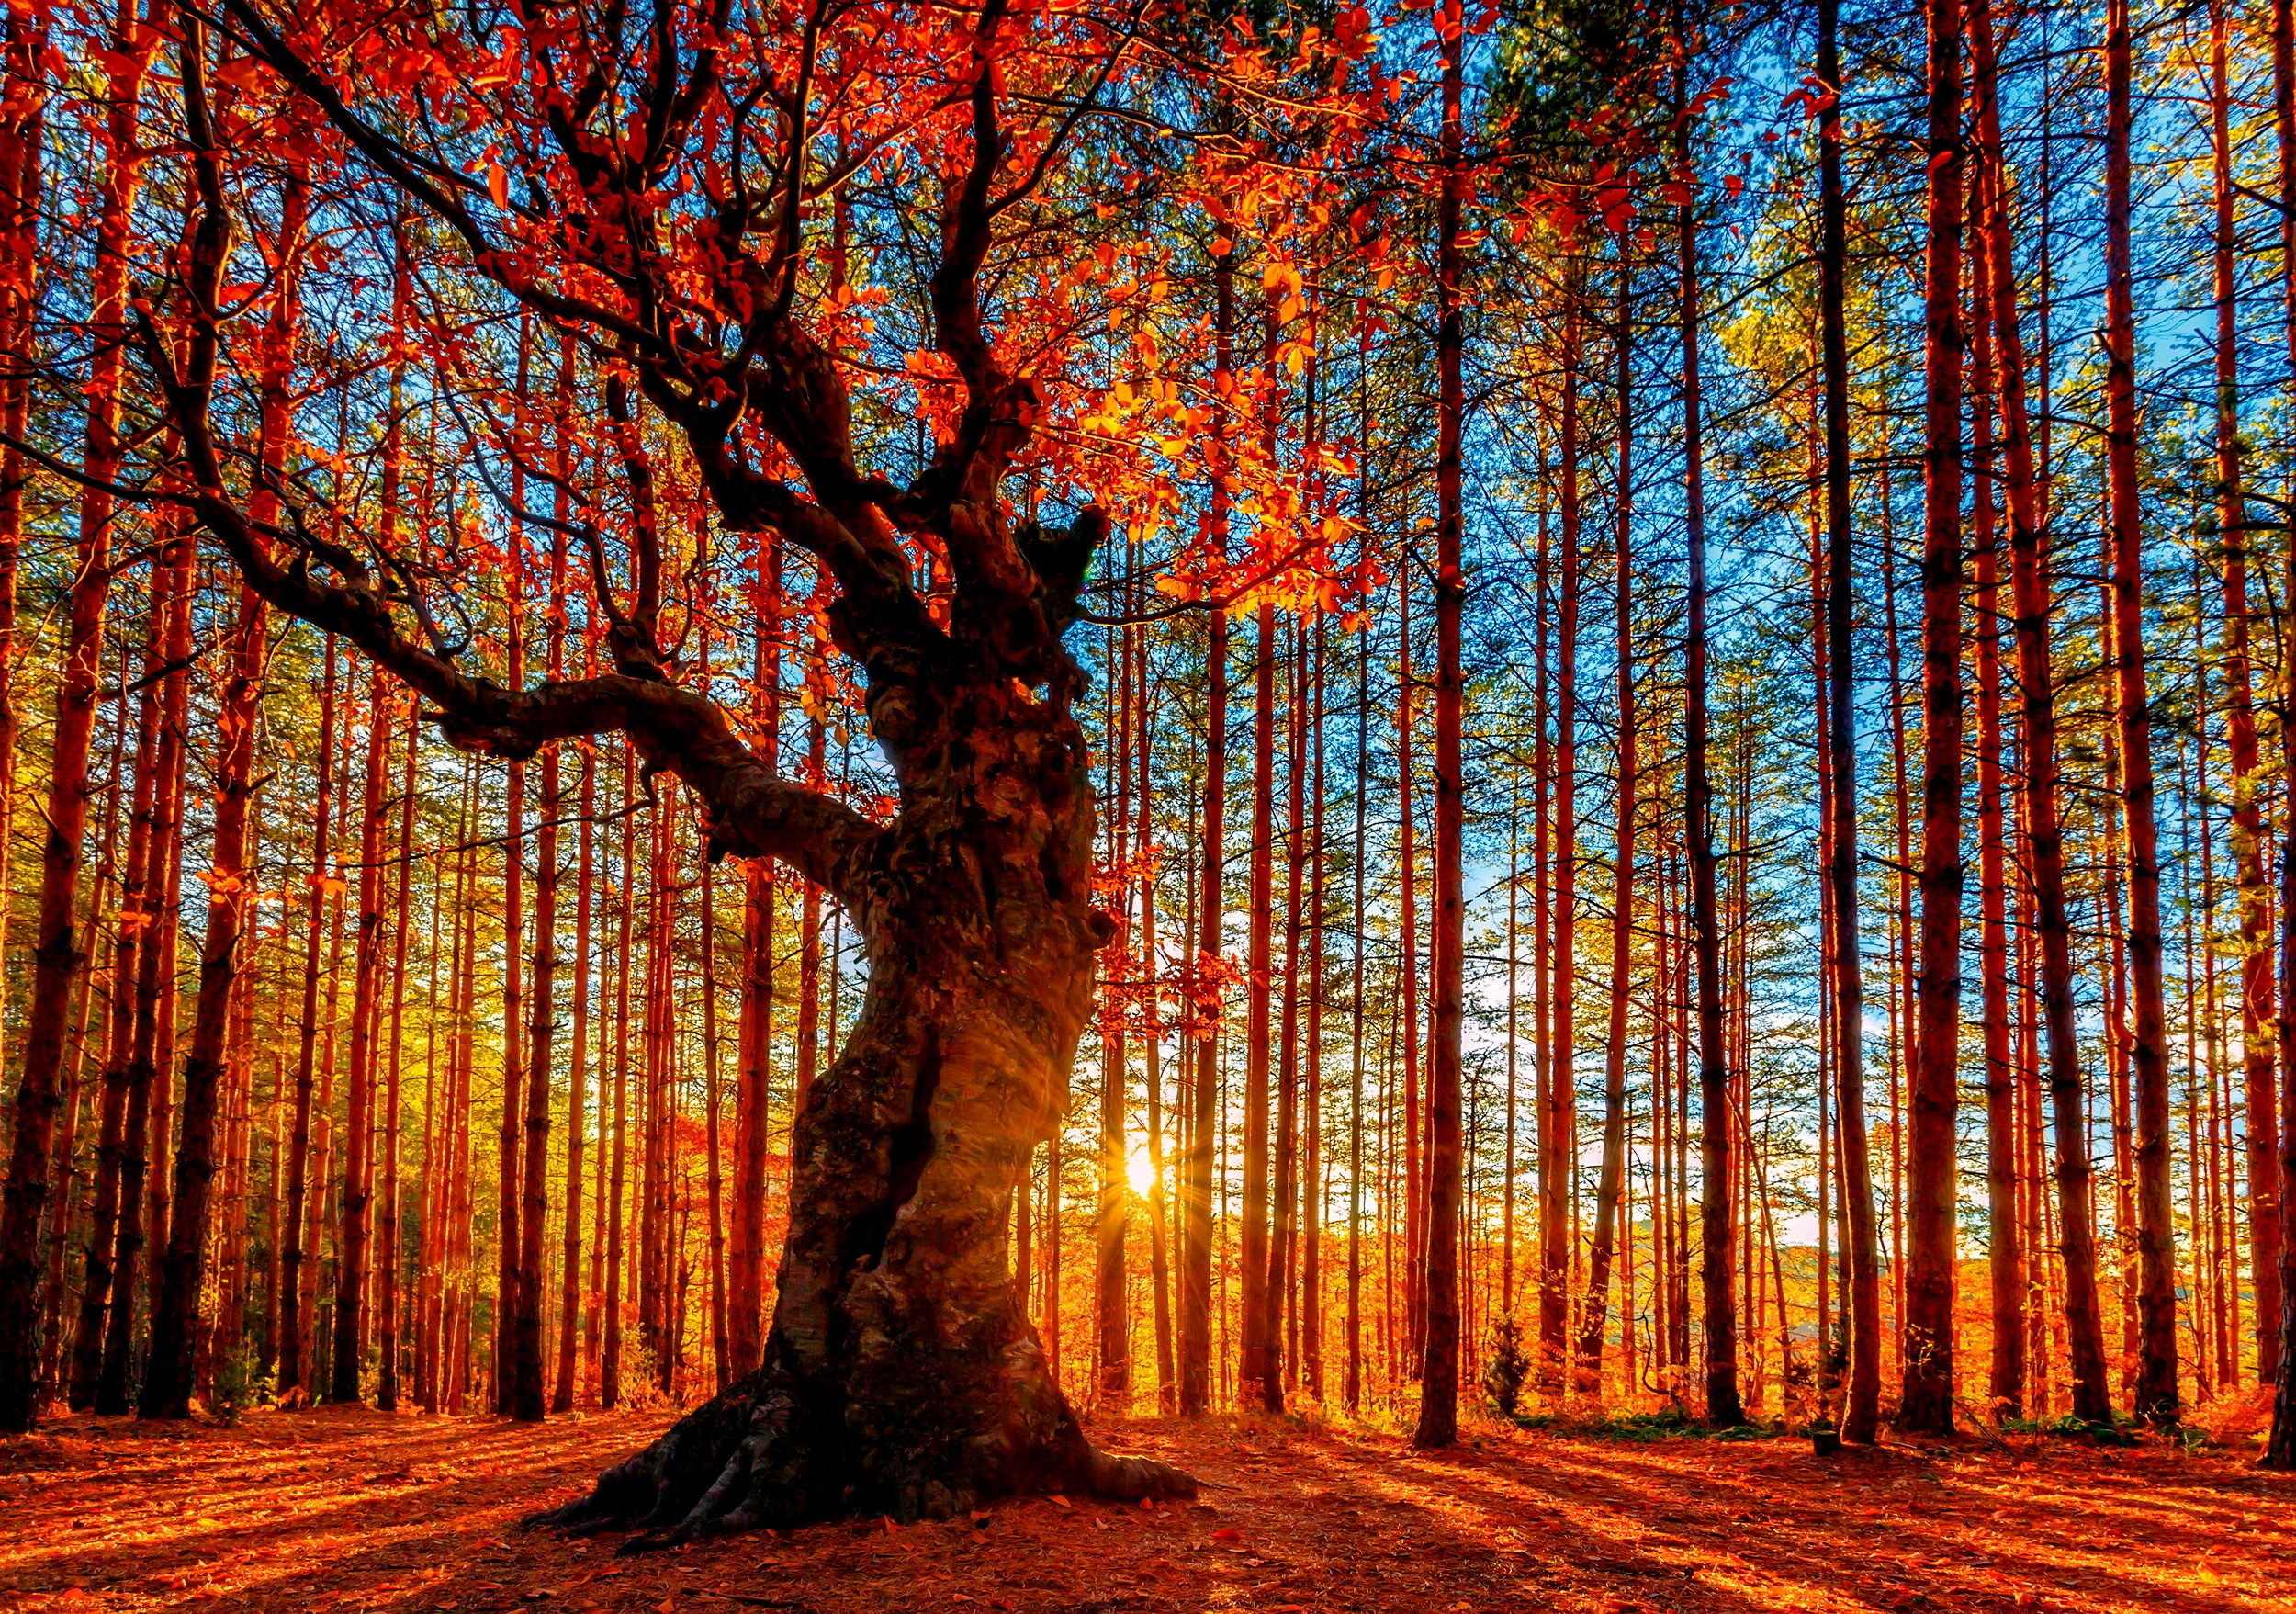 Wallpaper Hd 1920x1080 Fall Forest Sky Trees Autumn Foliage Wallpaper 2500x1757